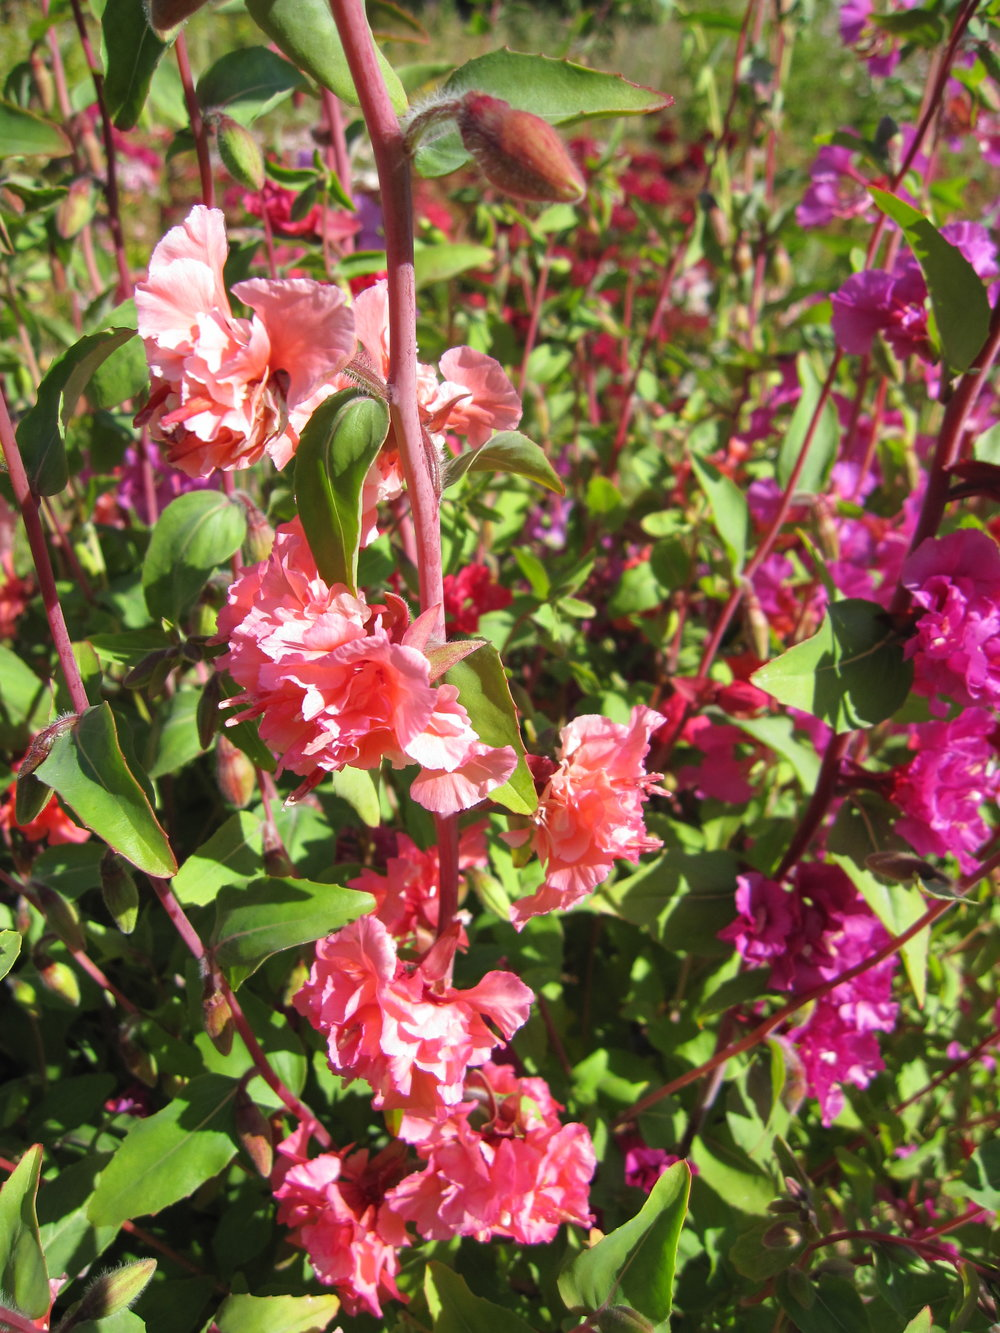 Clarkia-Flowers-Flowers-Full Circle Seeds